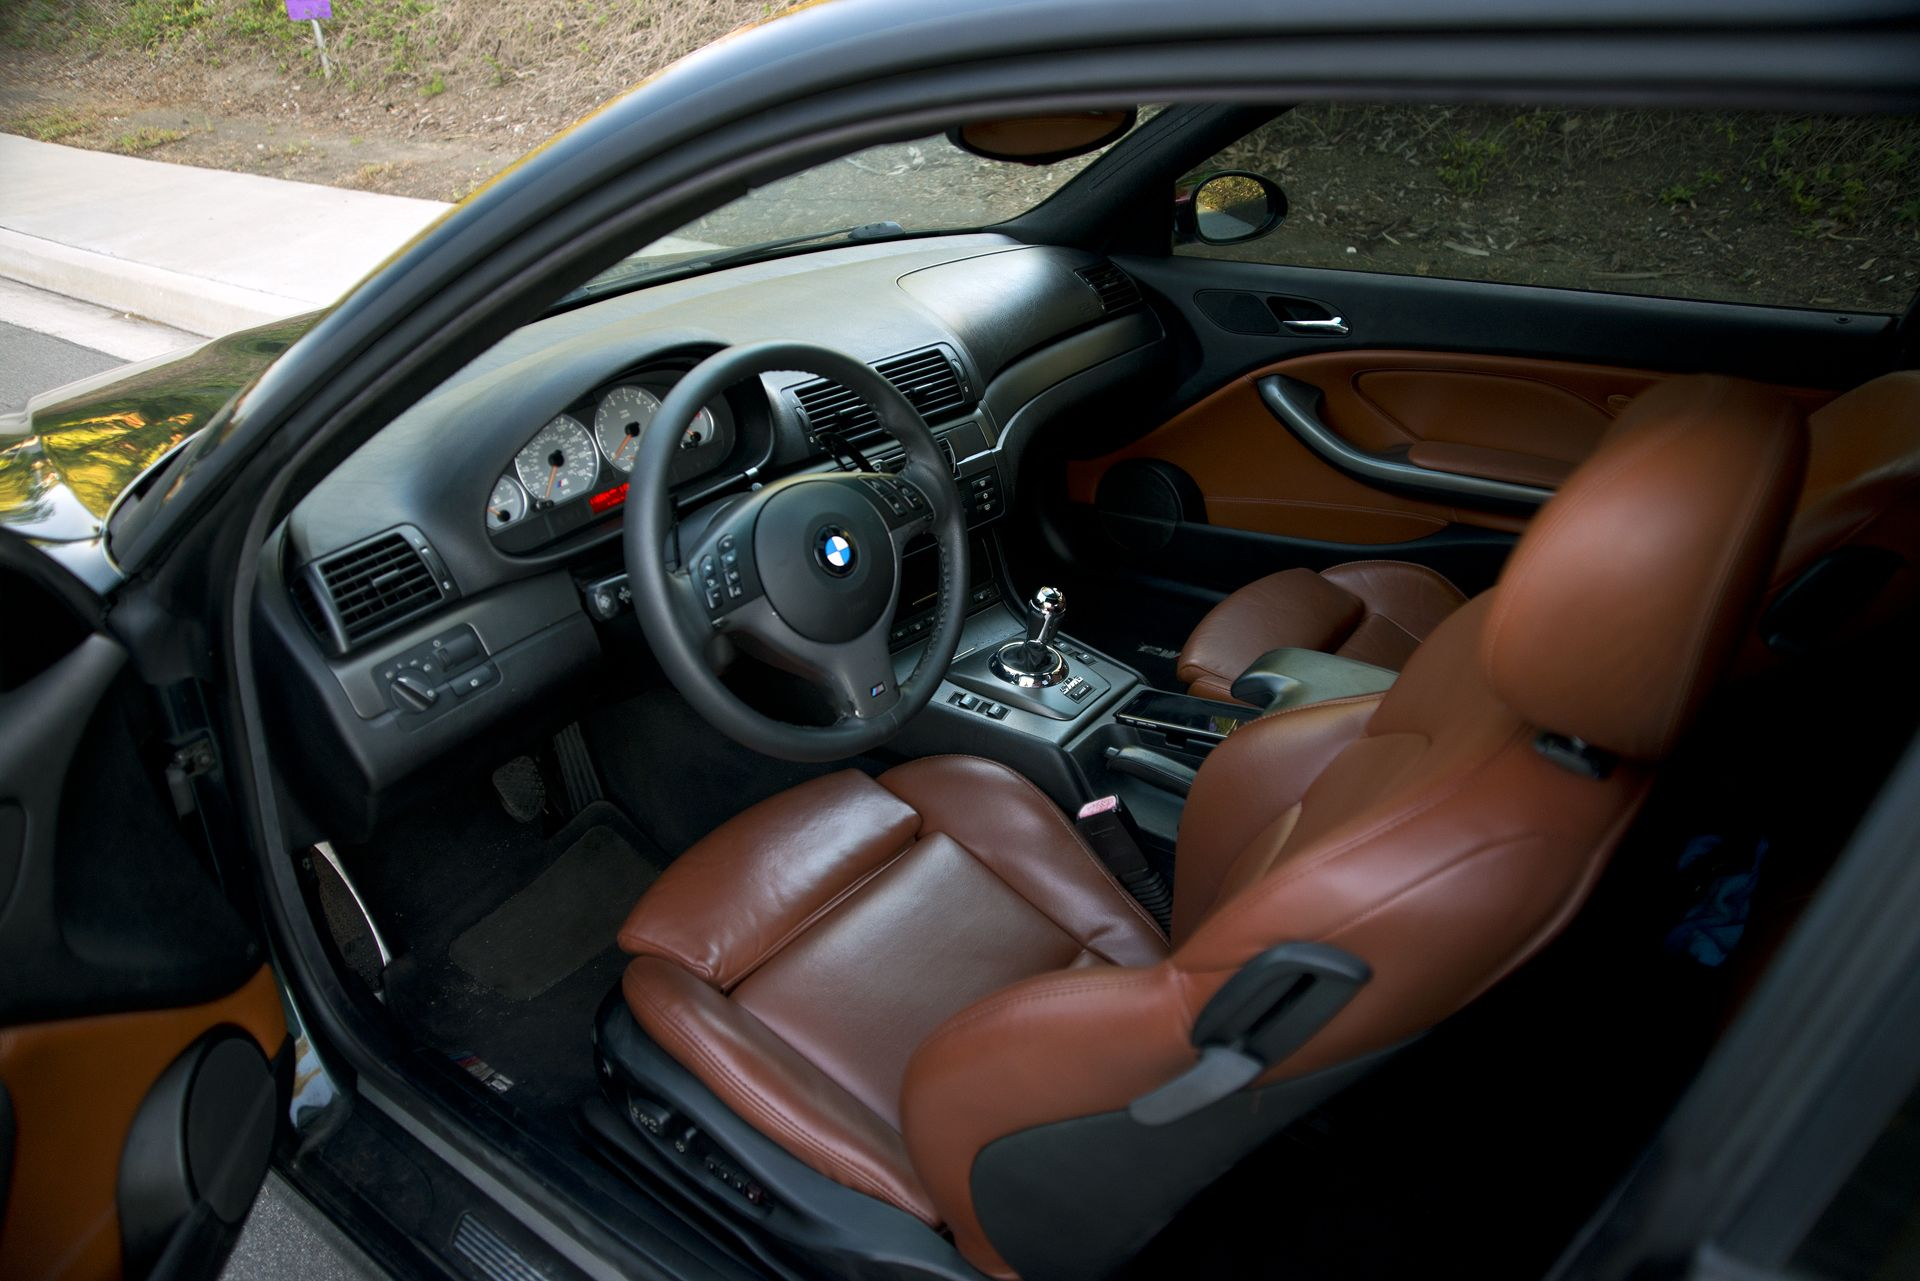 BMW M3 Cinnamon Leather Interior | My for the e46 | Pinterest ...